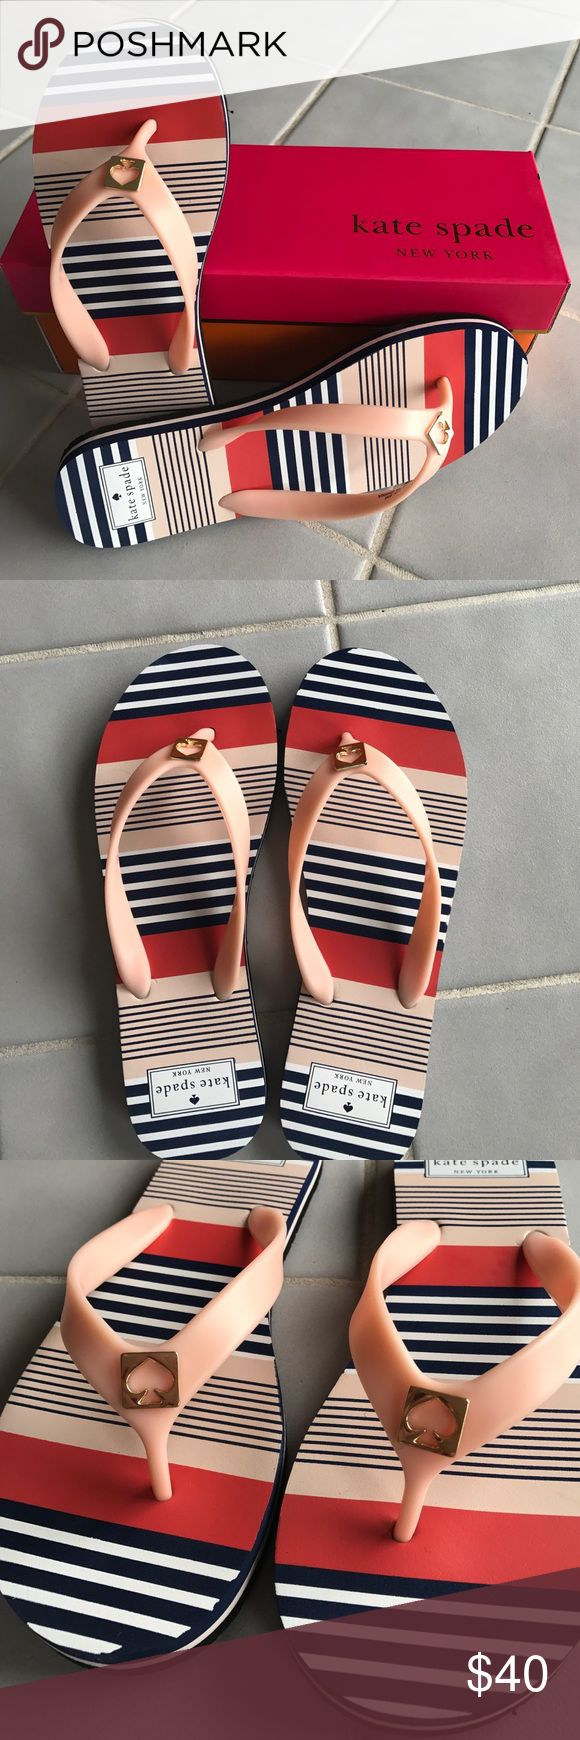 NWT Kate Spade Striped Sandals Size 8 ♠️ Brand new Kate Spade sandals in size 7-8! Fun striped pattern with the Kate Spade logo. Sandal size states it is an 8 but fits 7-8 as the pictures shows. kate spade Shoes Sandals